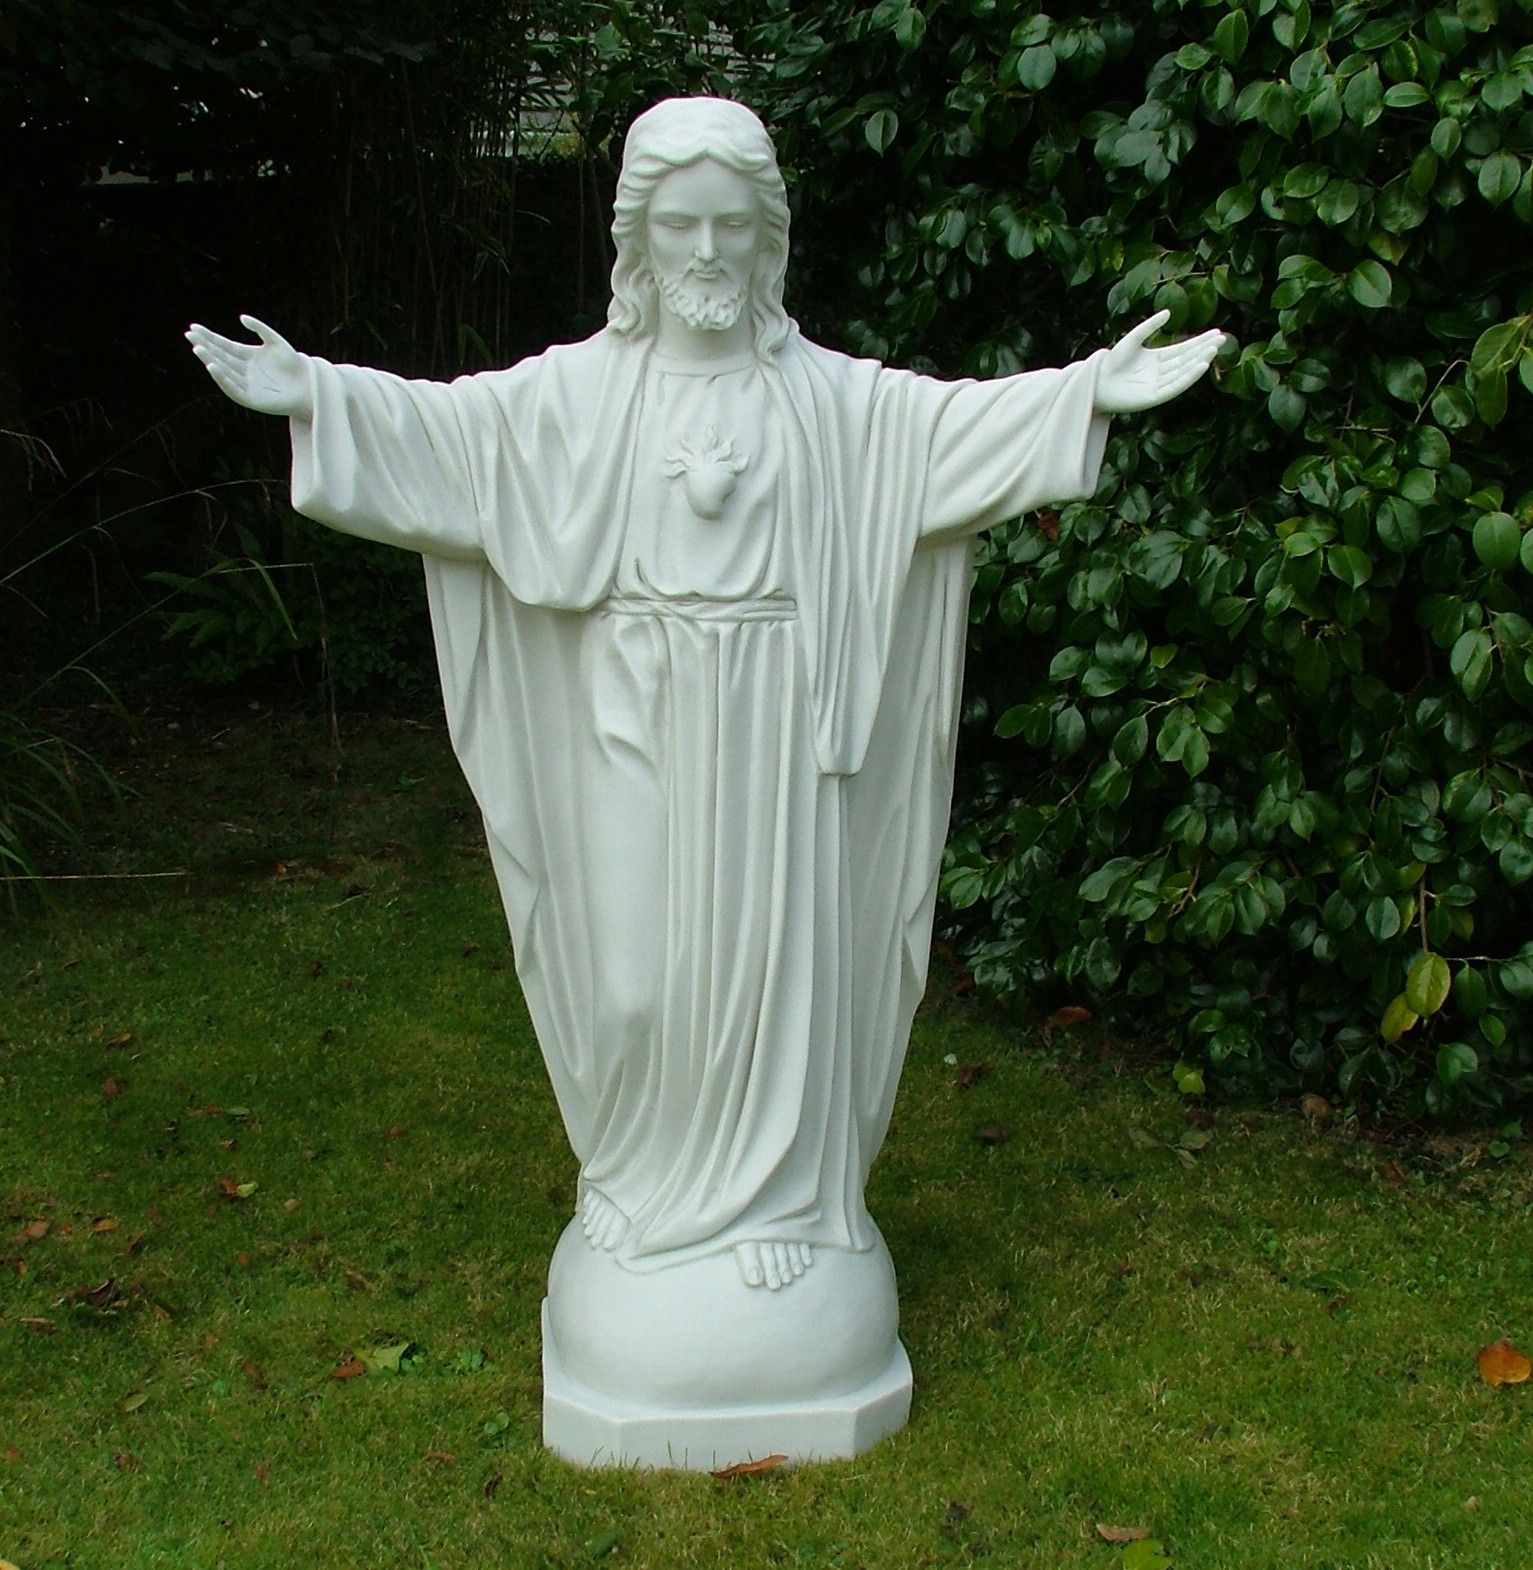 View The Religious Jesus Sculpture   Large Garden Statue. Or See Our Full  Range Of Exquisite Unique To Statues U0026 Sculptures Online.